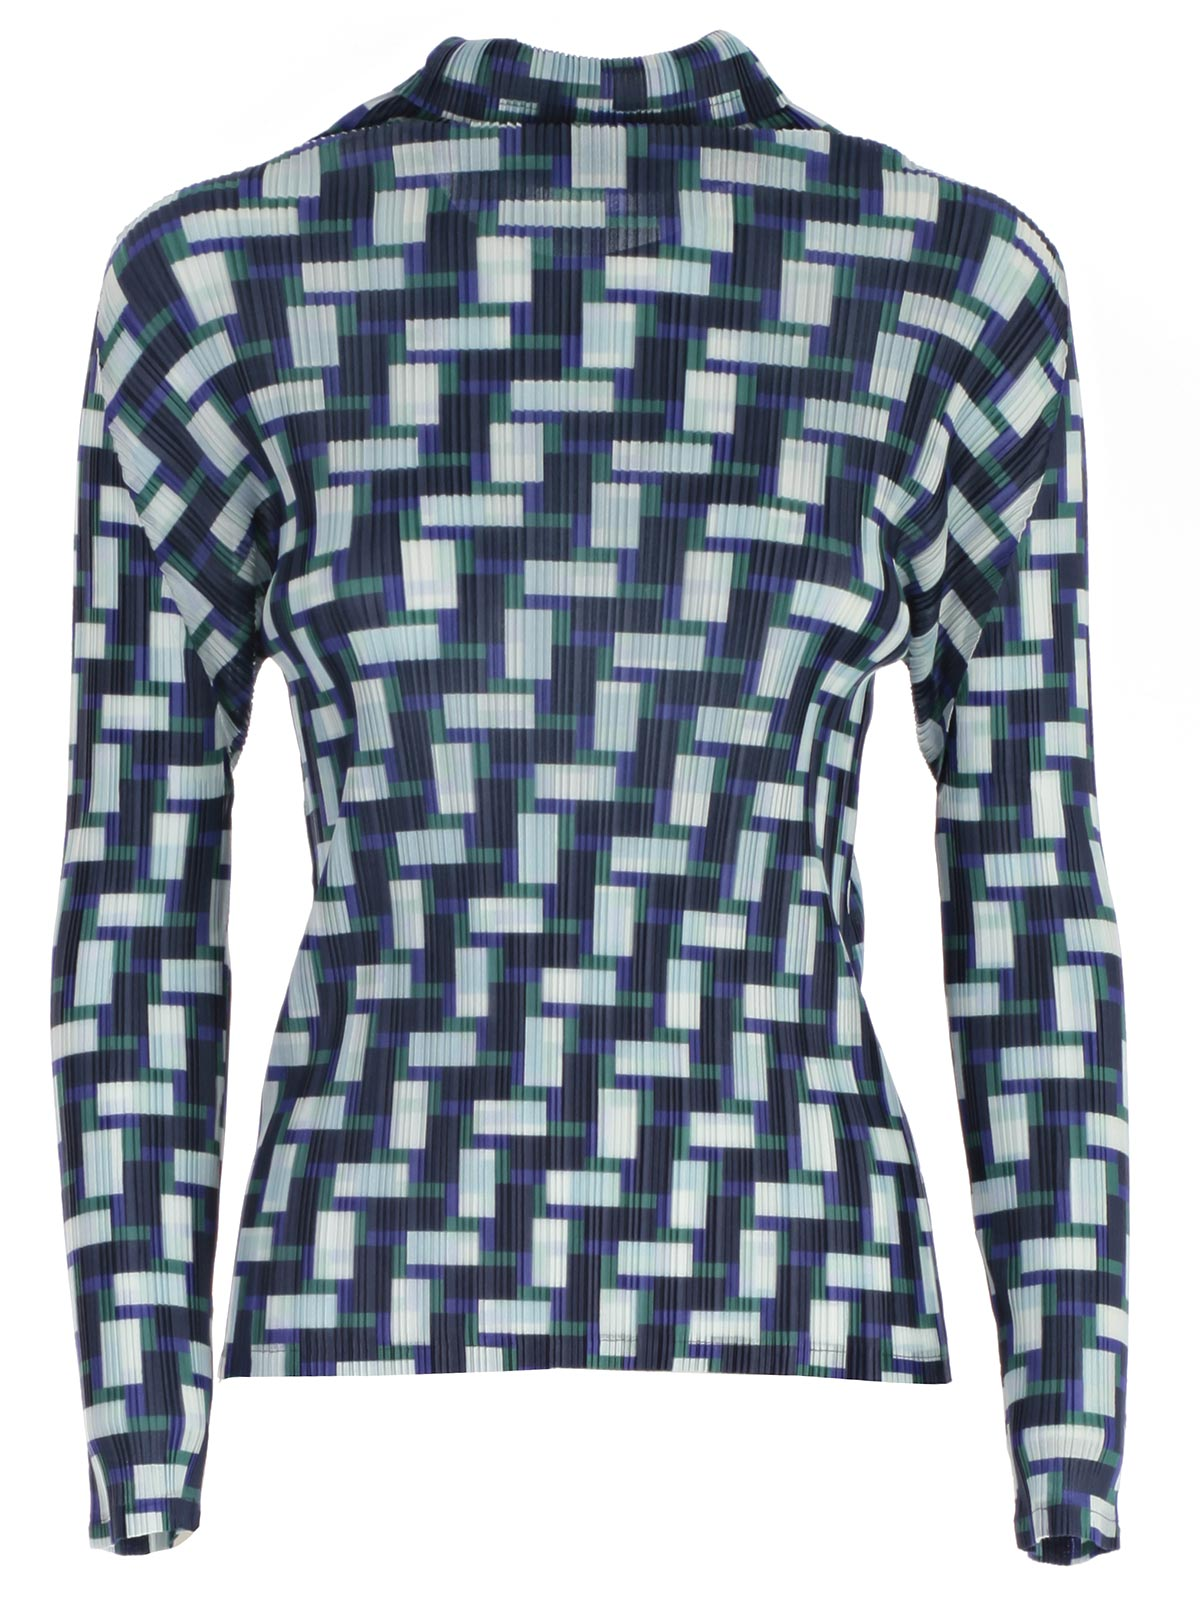 Picture of PLEATS PLEASE BY ISSEY MIYAKE T-SHIRT T-SHIRT